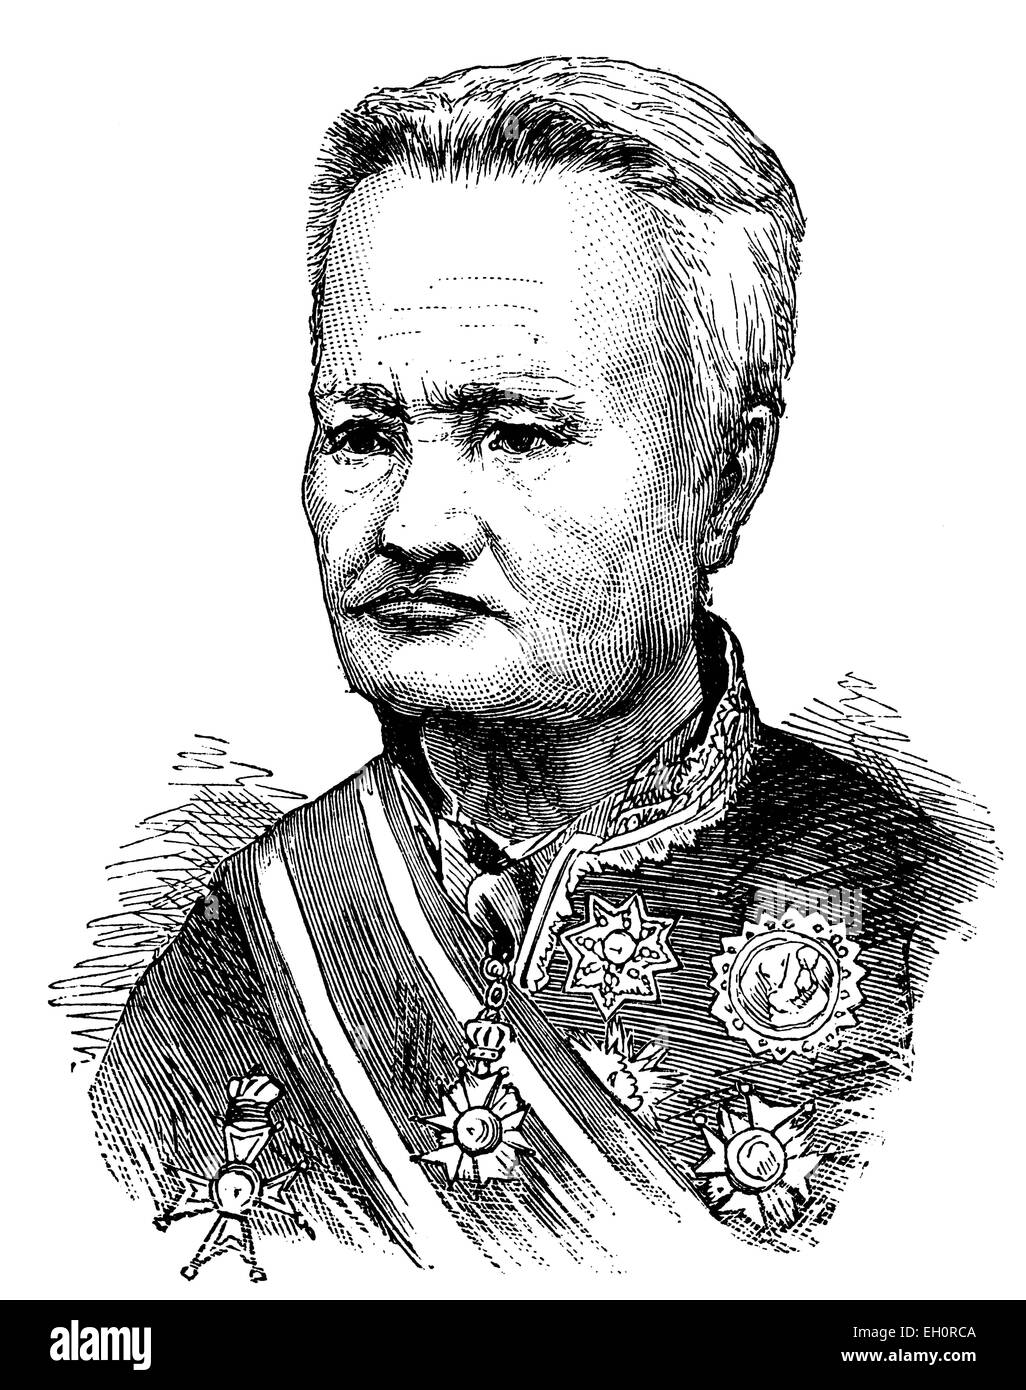 Suriwongse, Somdet Chao Phraya Borm Maha Si Suriyawongse, 1808 - 1883, King and Regent of Siam until 1868, historic - Stock Image